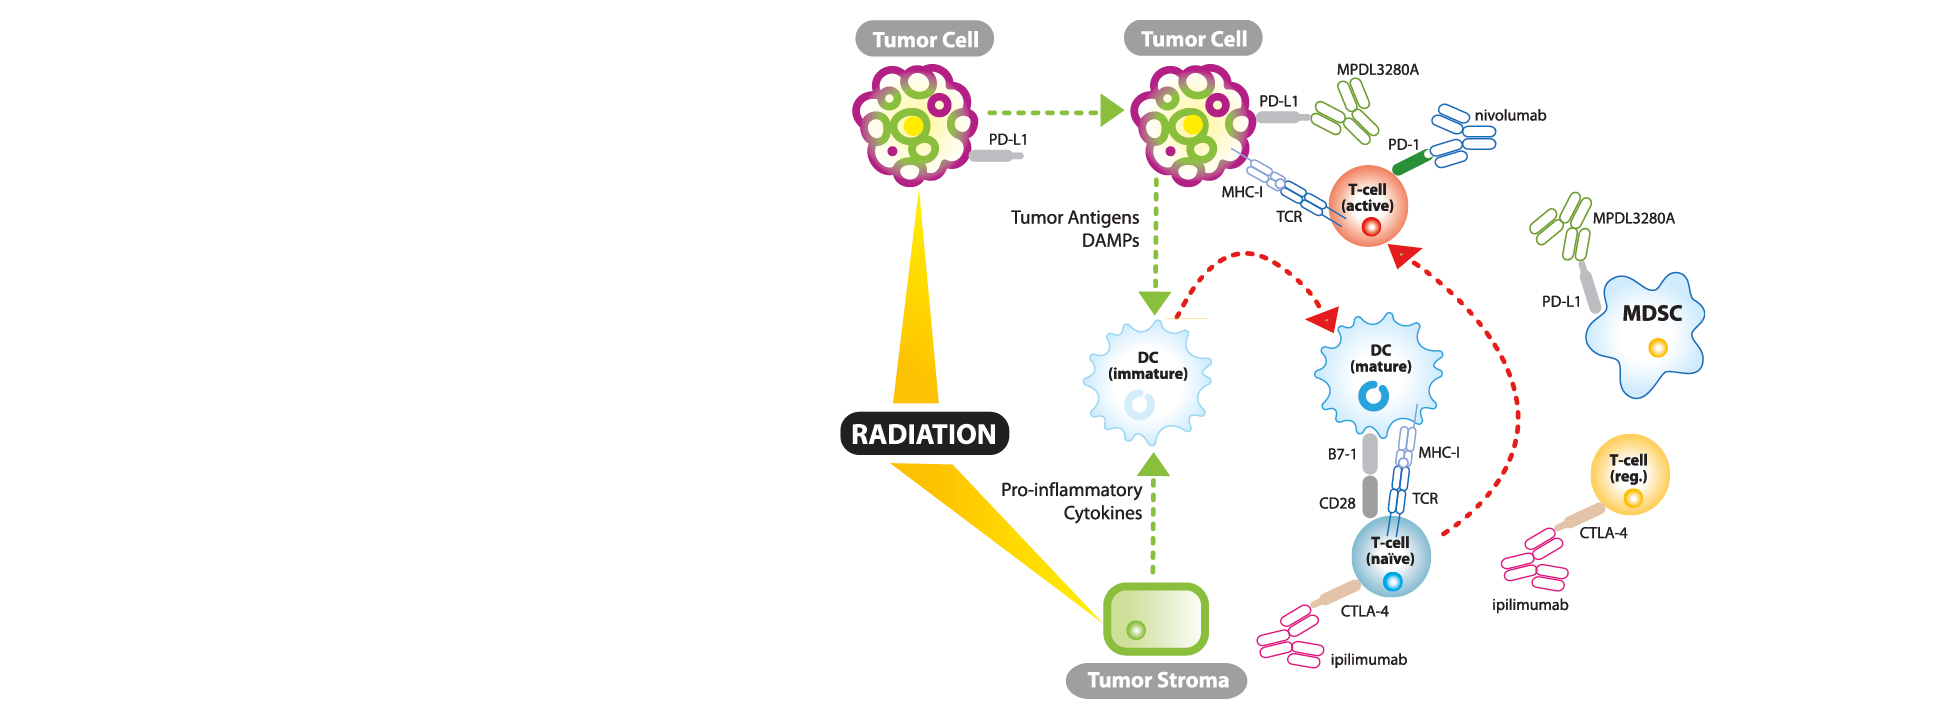 The synergistic relationship between immunotherapy and radiation.